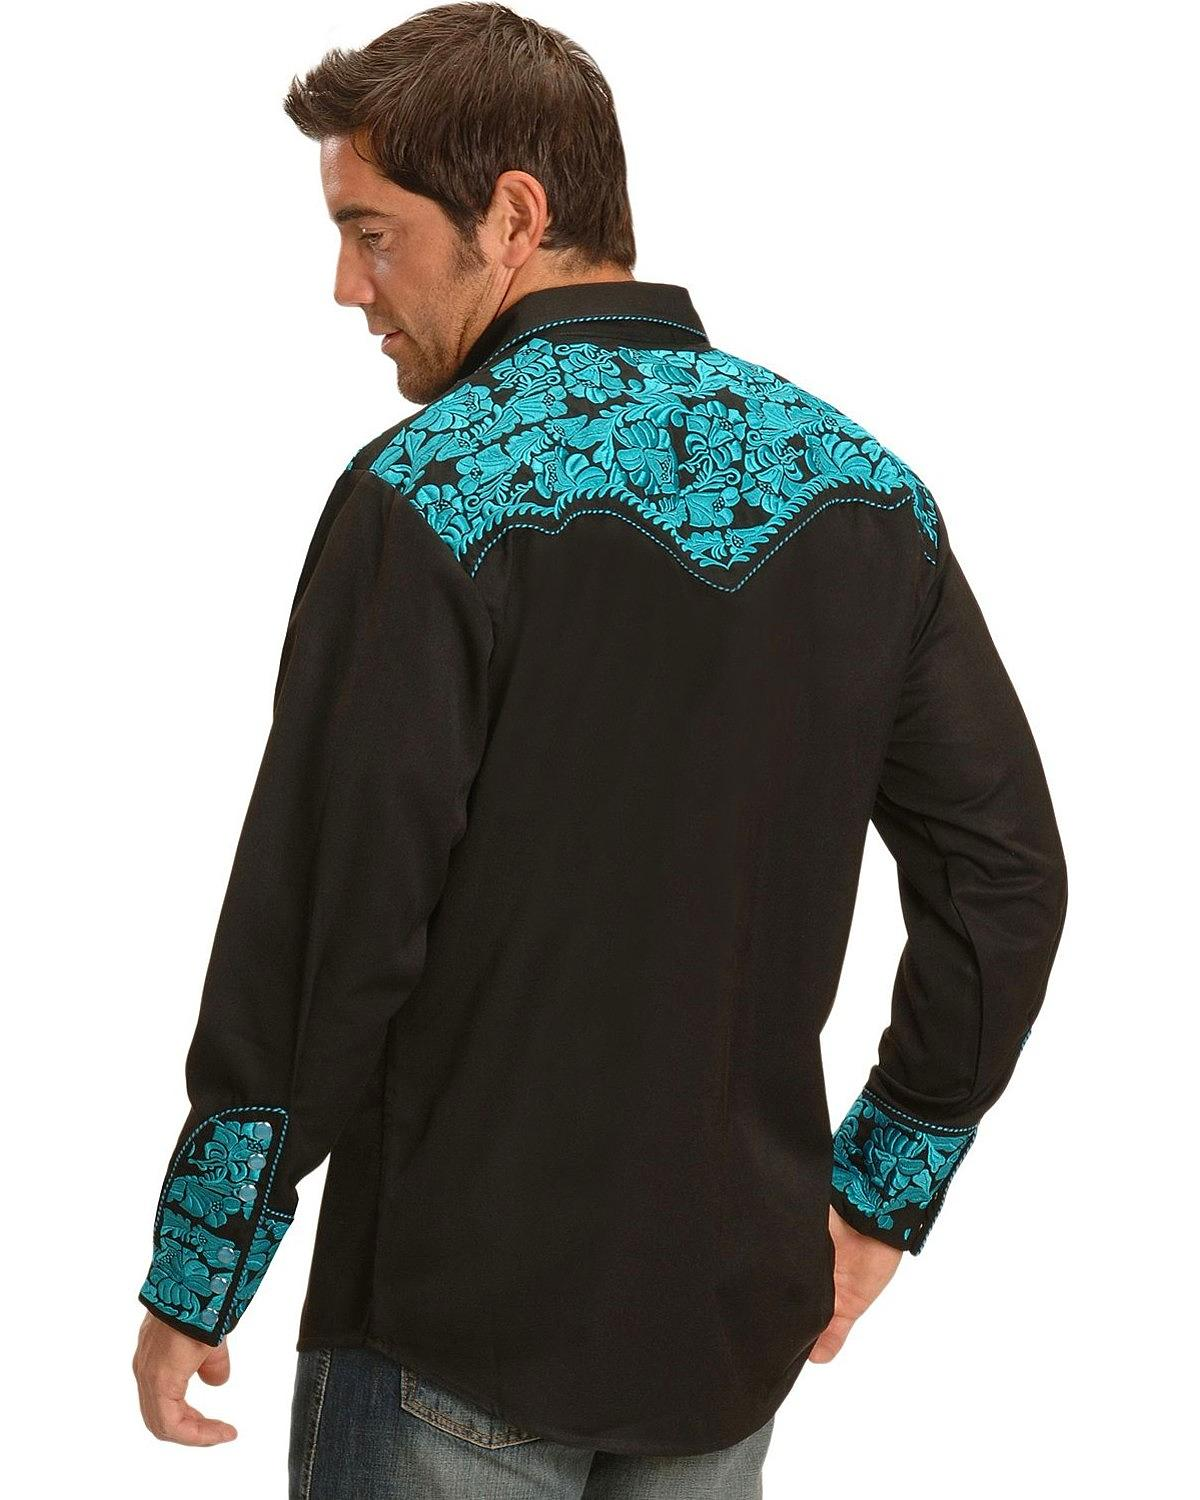 Scully men 39 s turquoise embroidery retro western shirt big for Tall size dress shirts